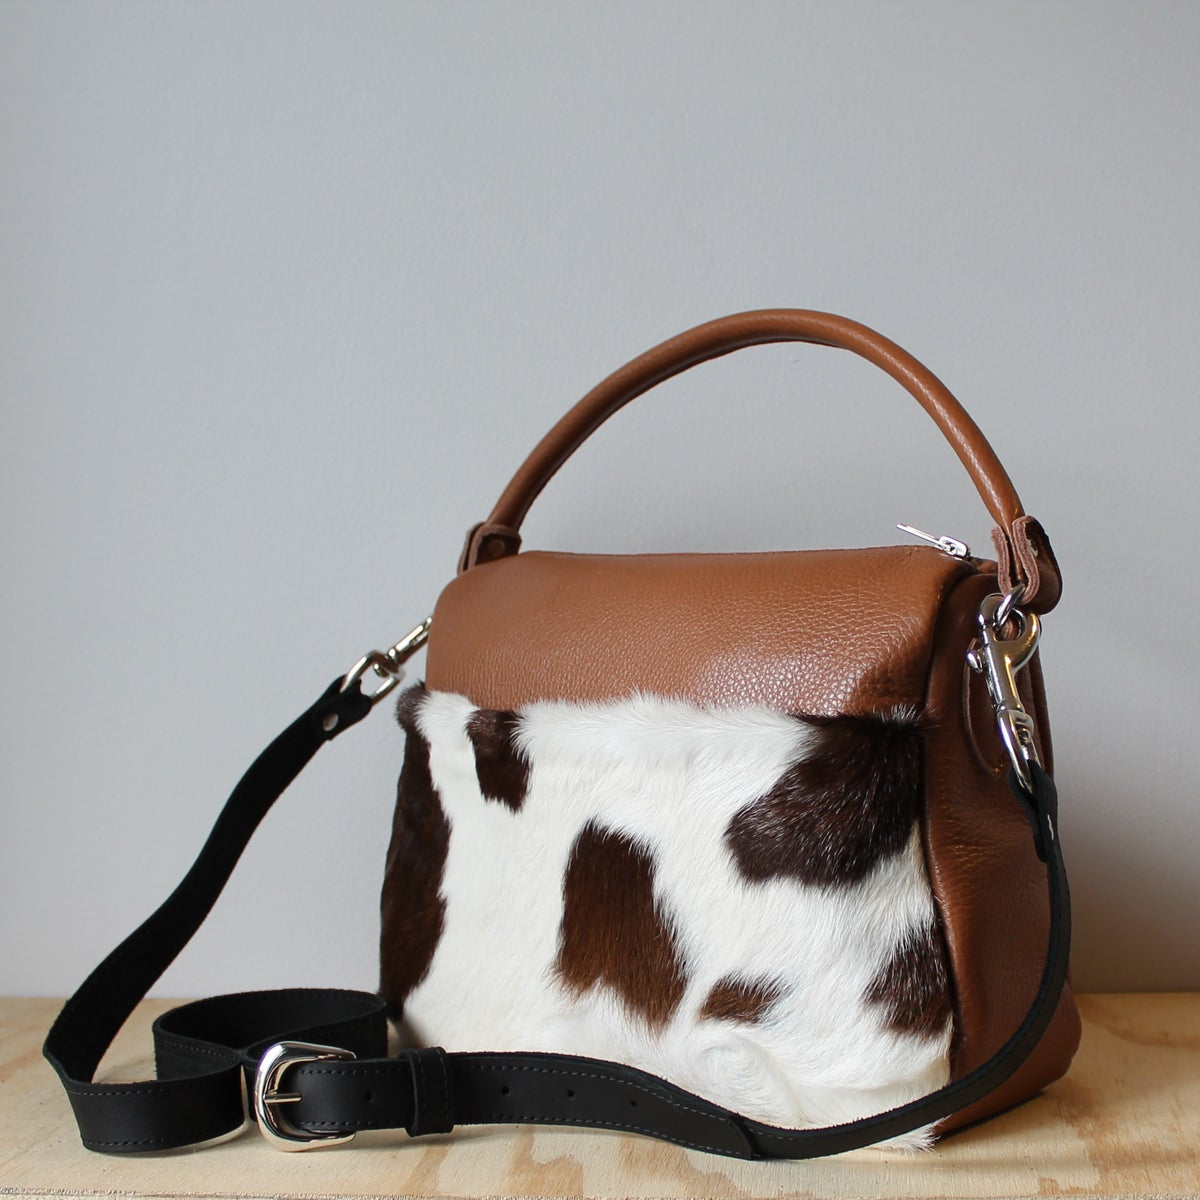 Runabout in Caramel Cow Hide